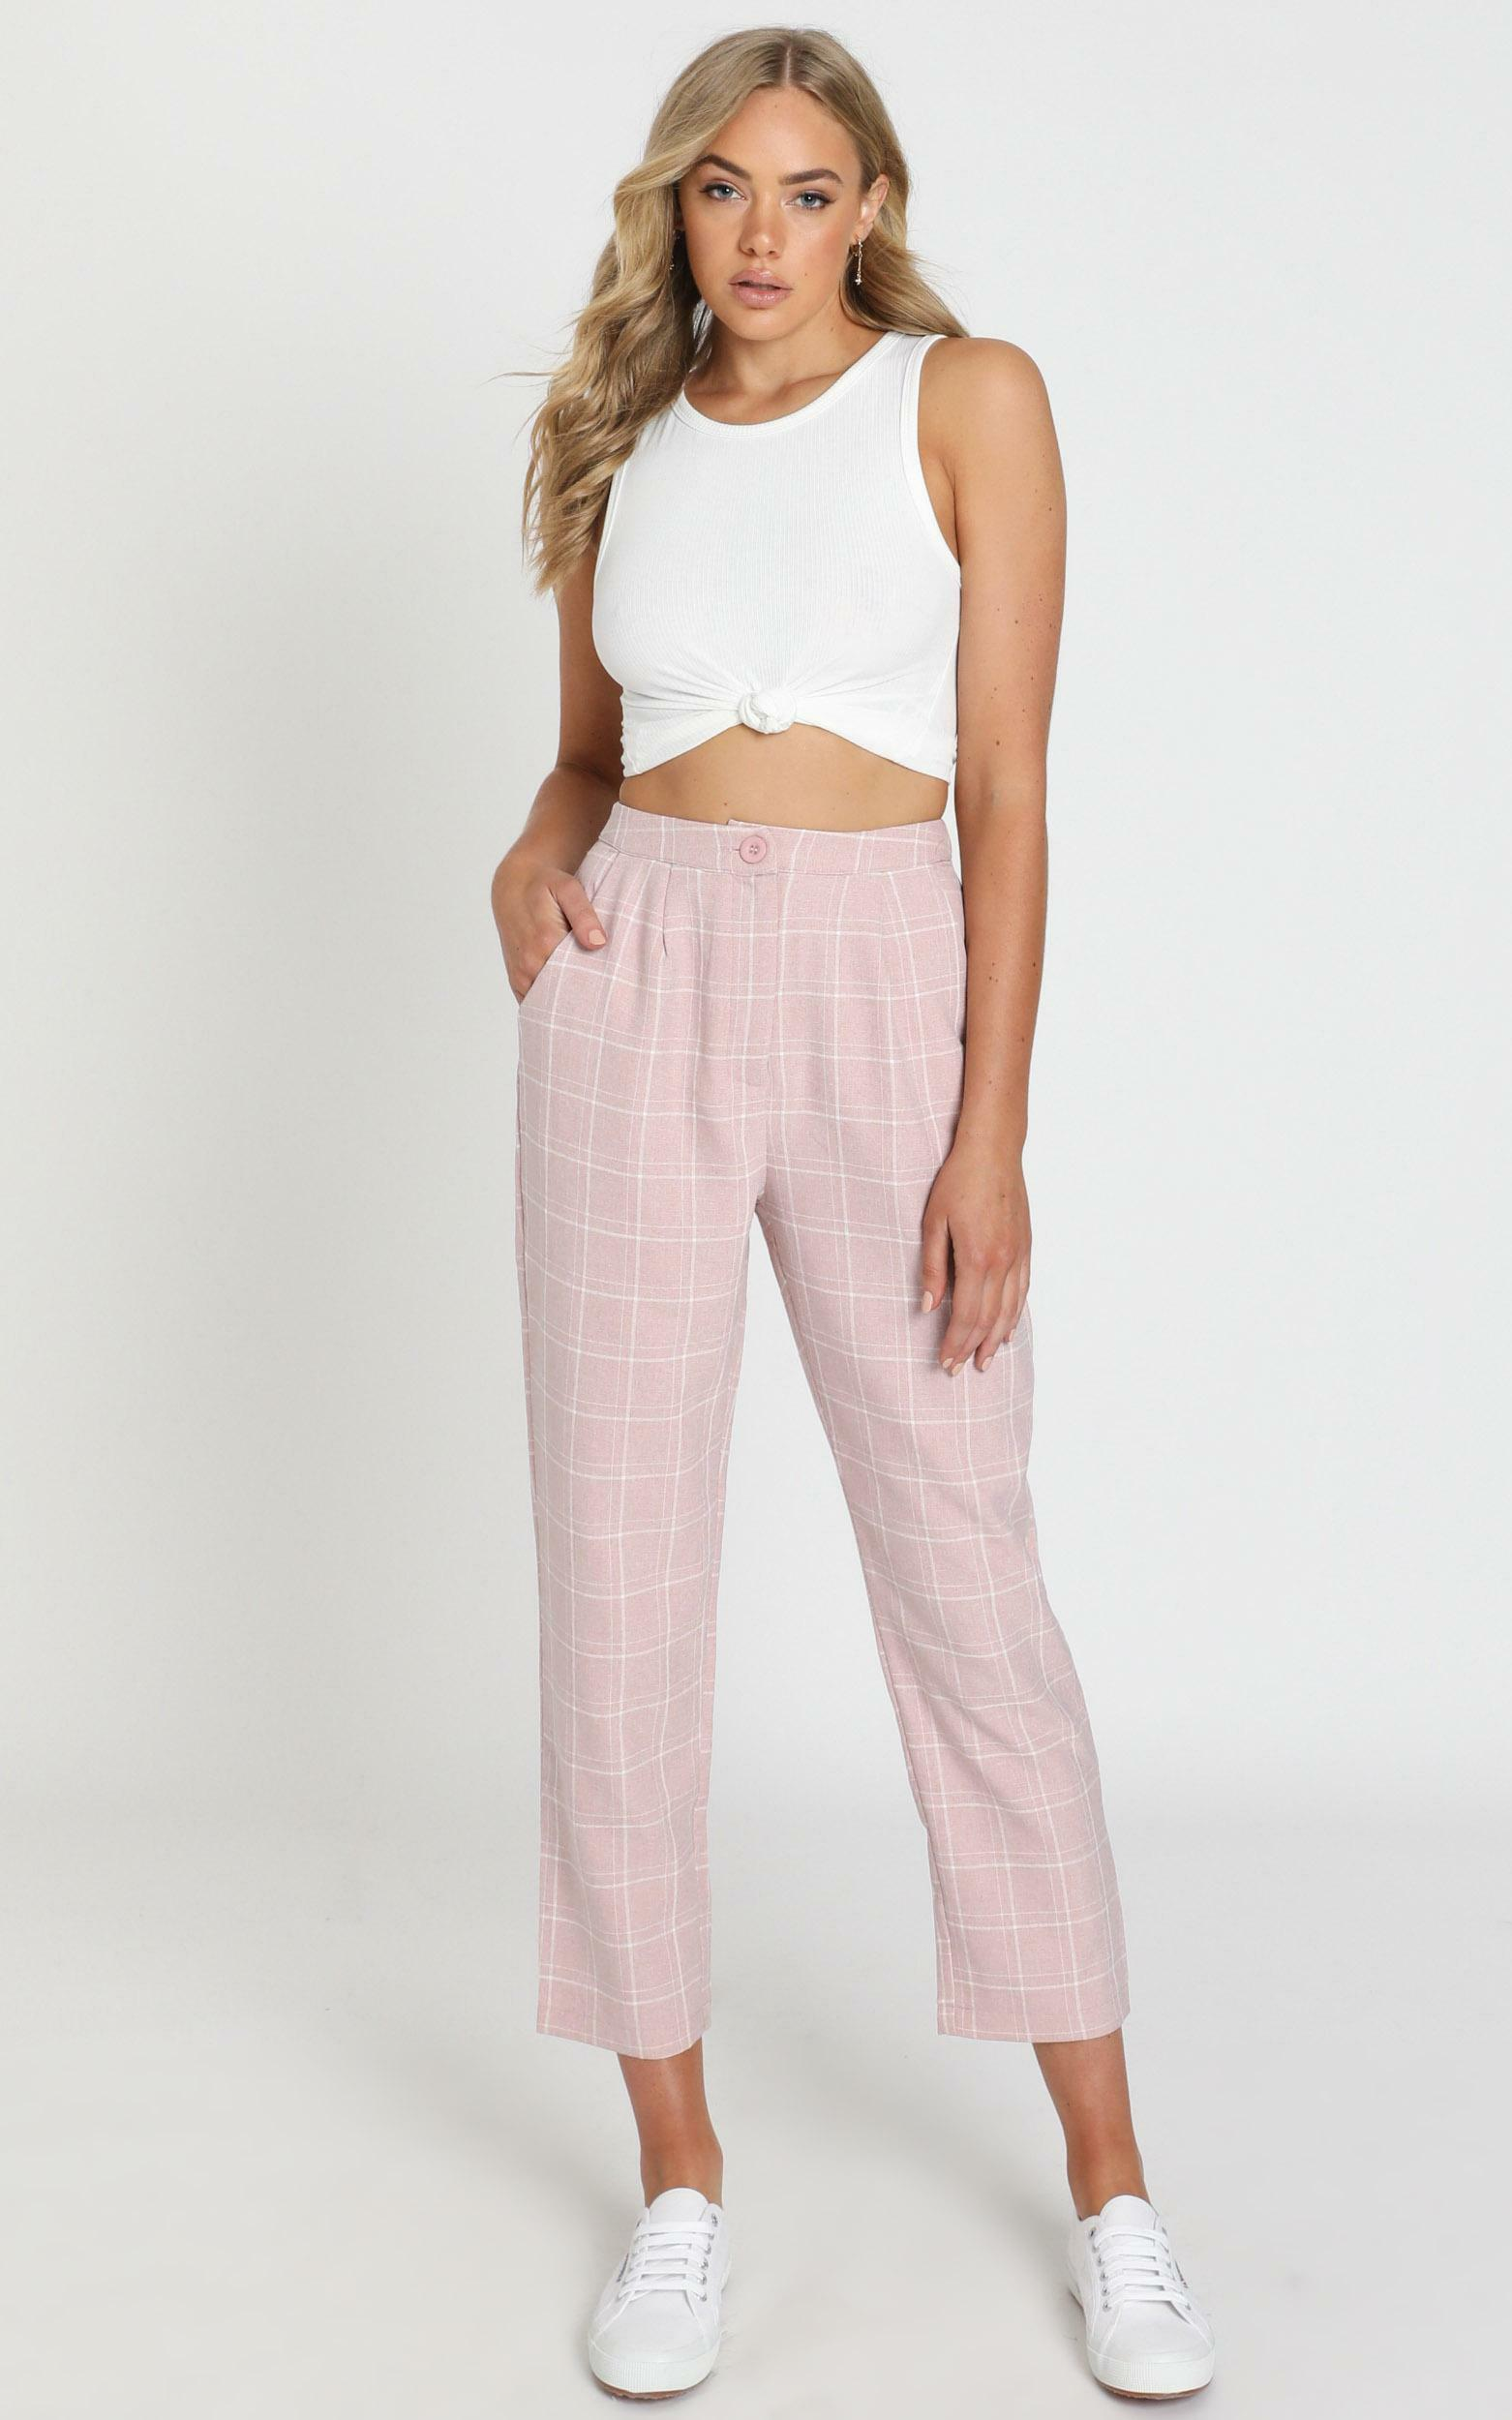 Alpine Pants in blush check - 20 (XXXXL), Blush, hi-res image number null